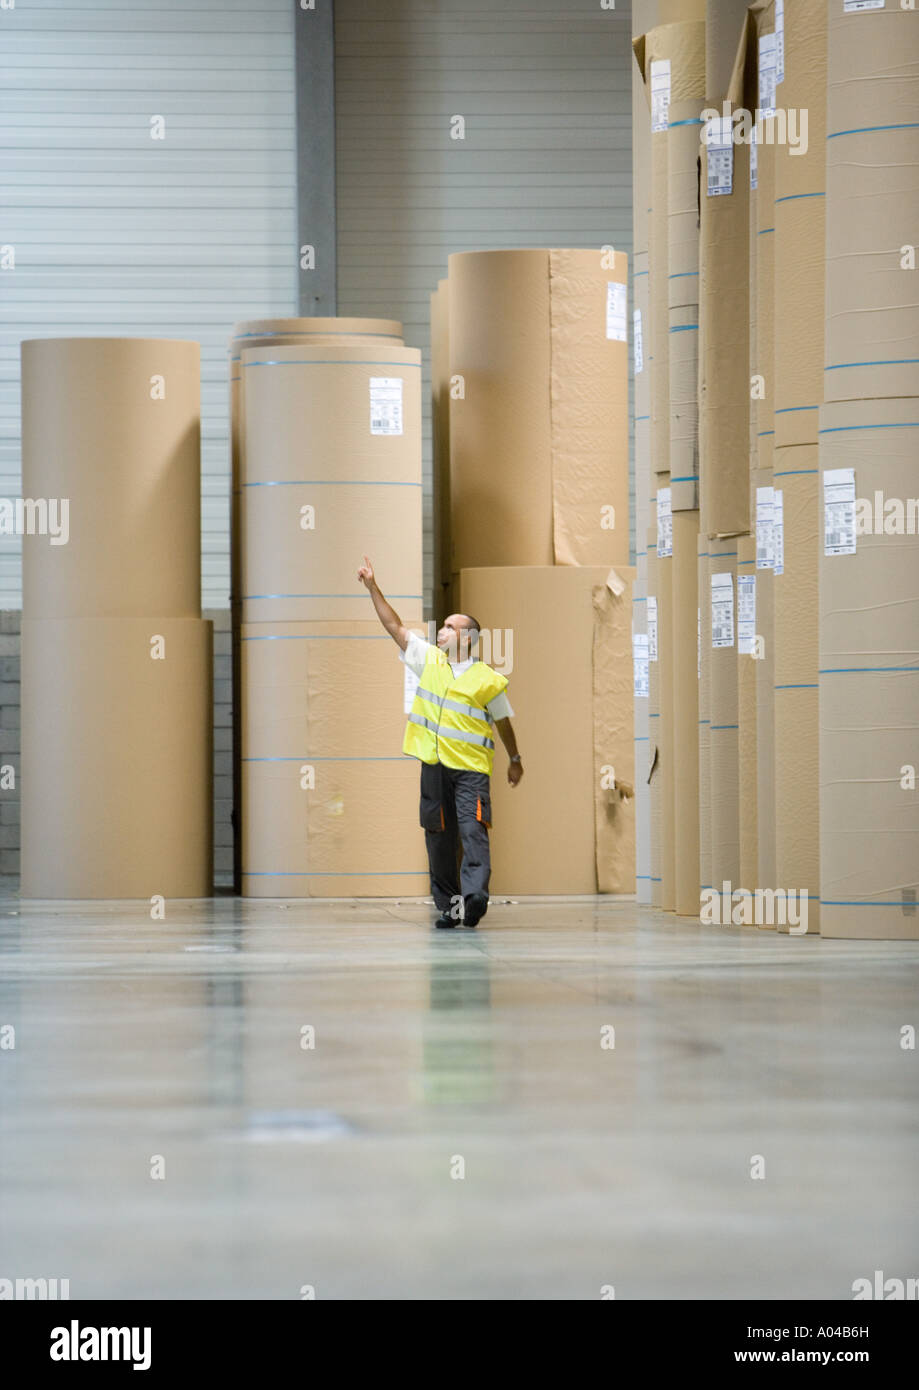 Factory worker standing next to rolls of paper, pointing - Stock Image